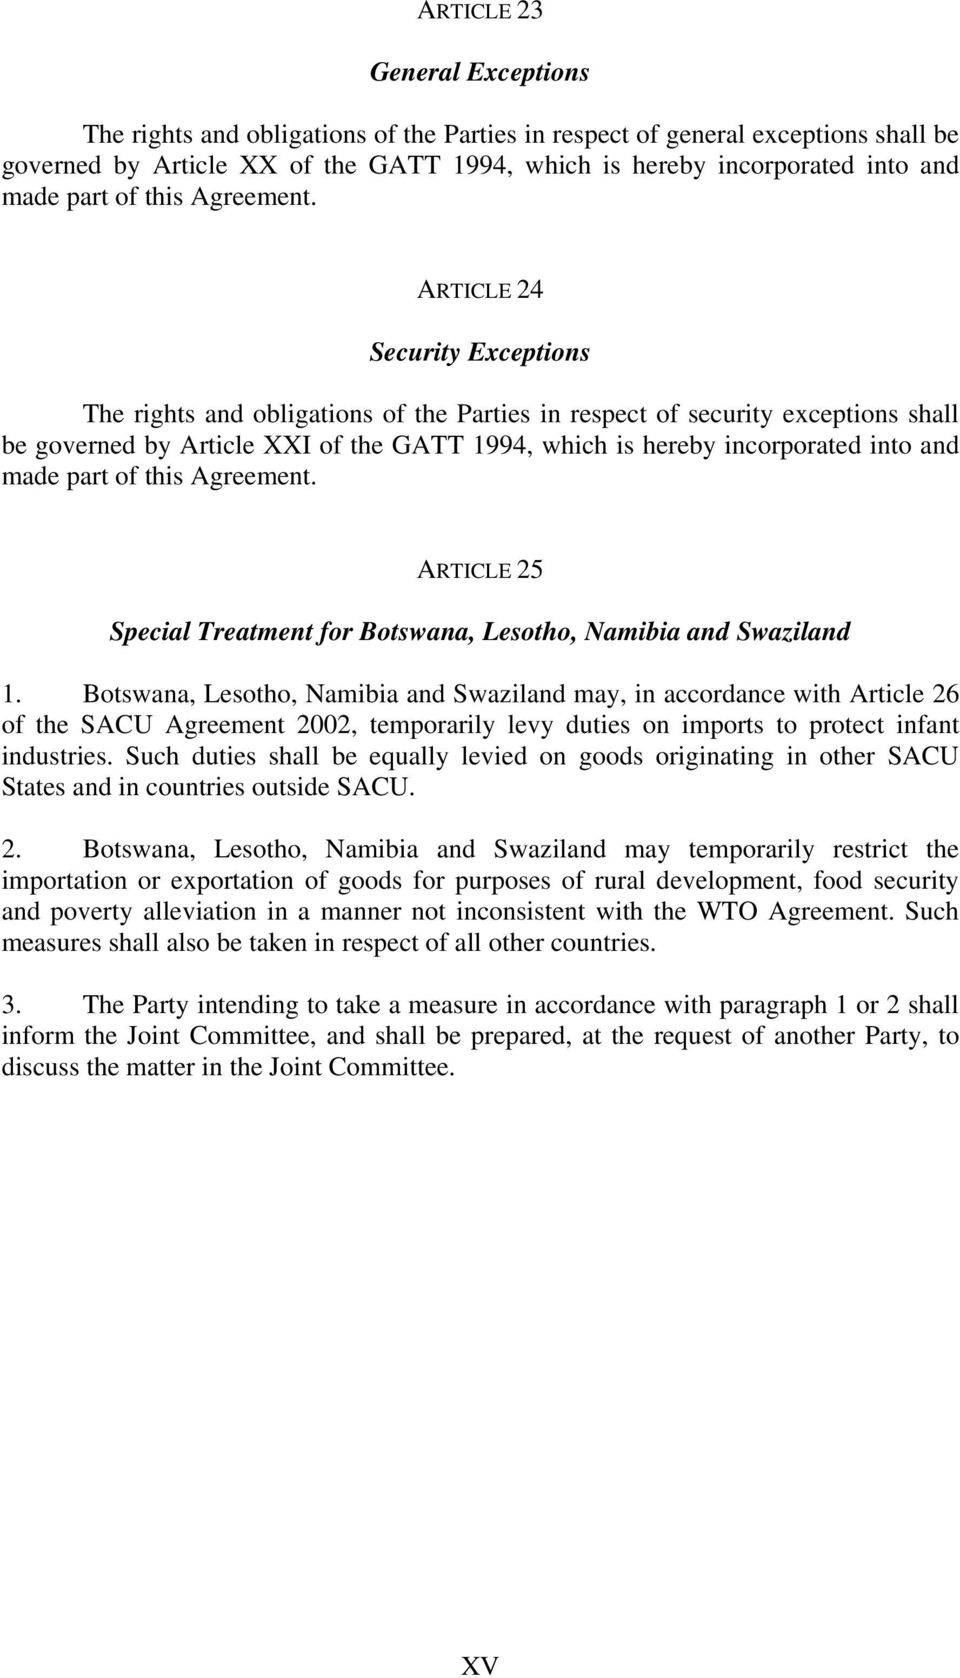 ARTICLE 24 Security Exceptions The rights and obligations of the Parties in respect of security exceptions shall be governed by Article XXI of the GATT 1994, which is hereby incorporated into and